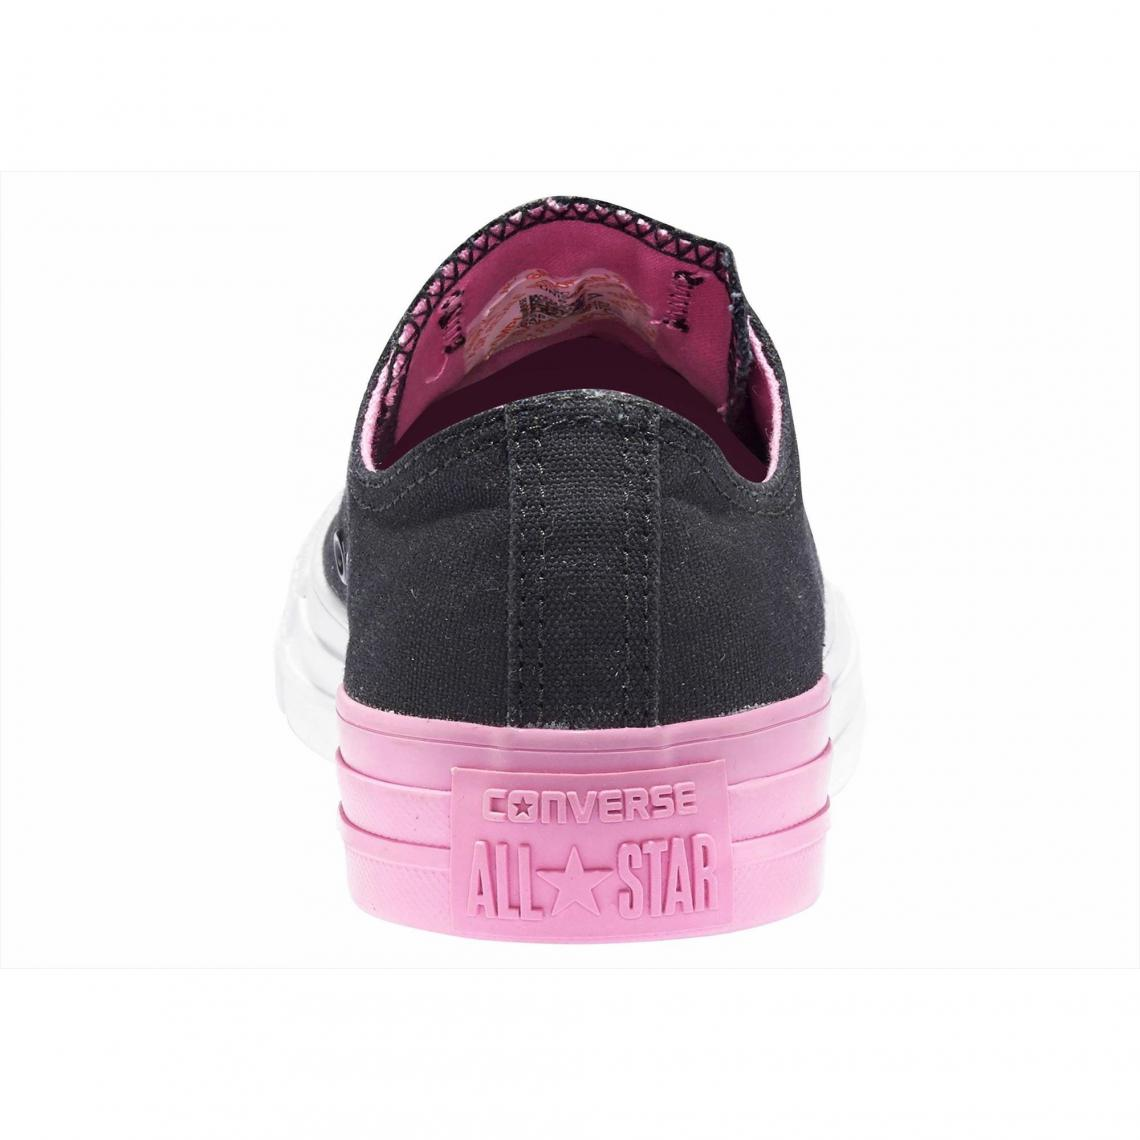 6ed4aa2d850 Baskets basses femme Converse Chuck Taylor All Star Ox Colorblock - Noir -  Rose Vif Converse